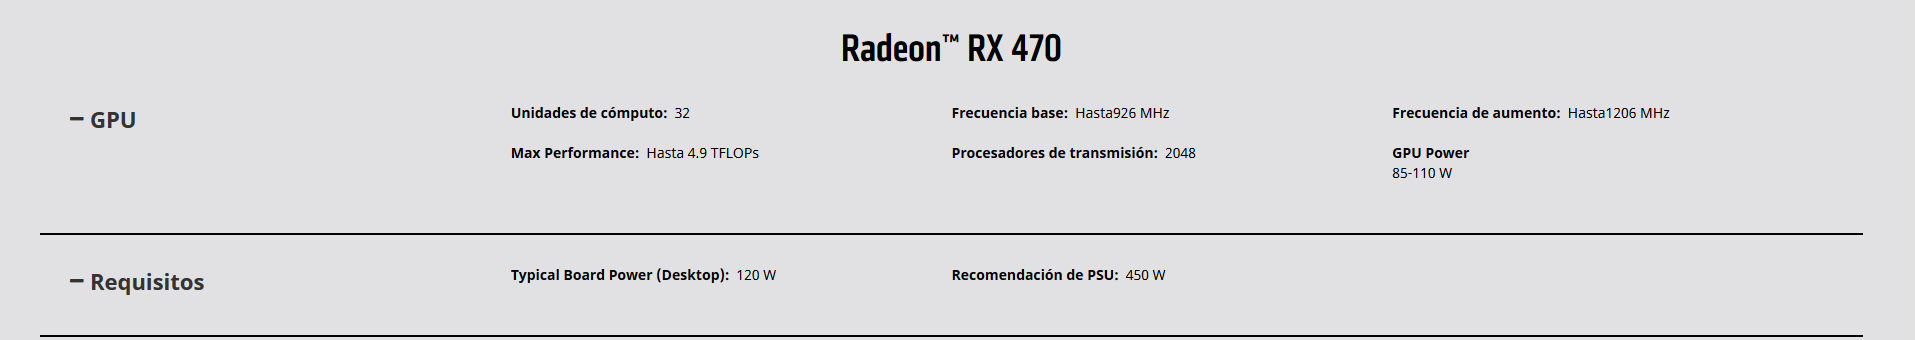 RX 470.png